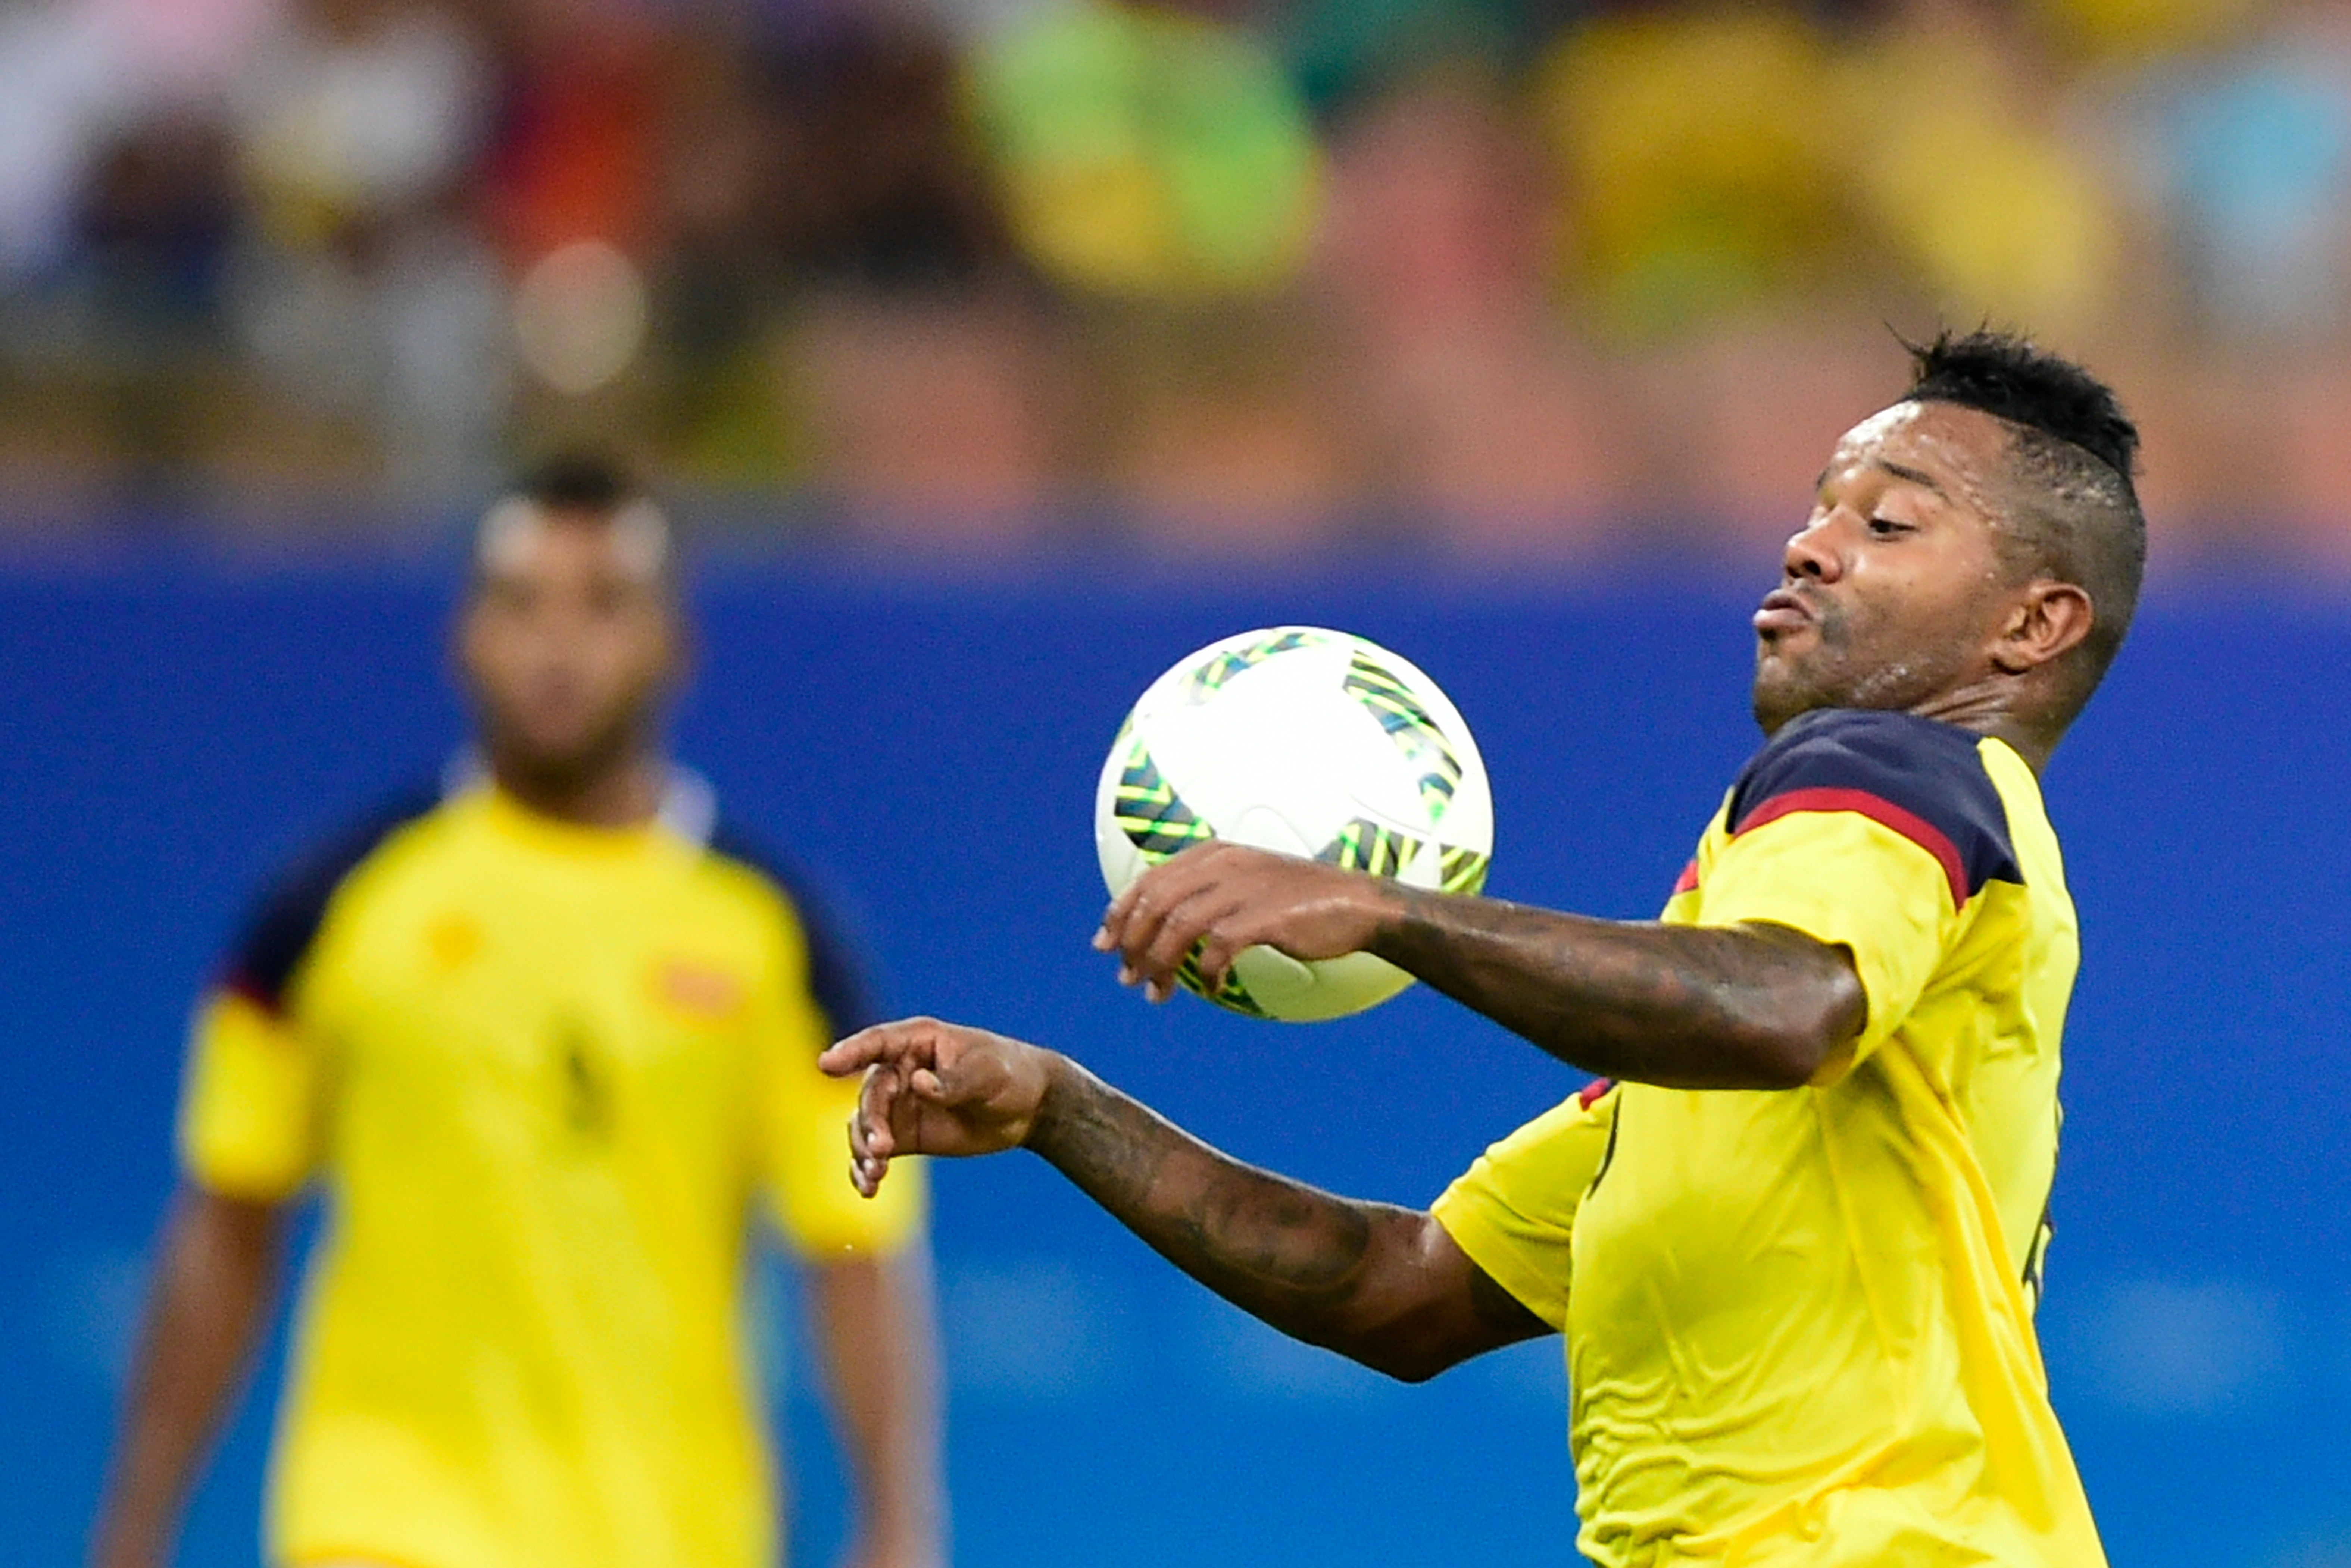 Dorlan Pabn of Colombia playing Japan in the Olympics at Arena Amazonia in Manaus.